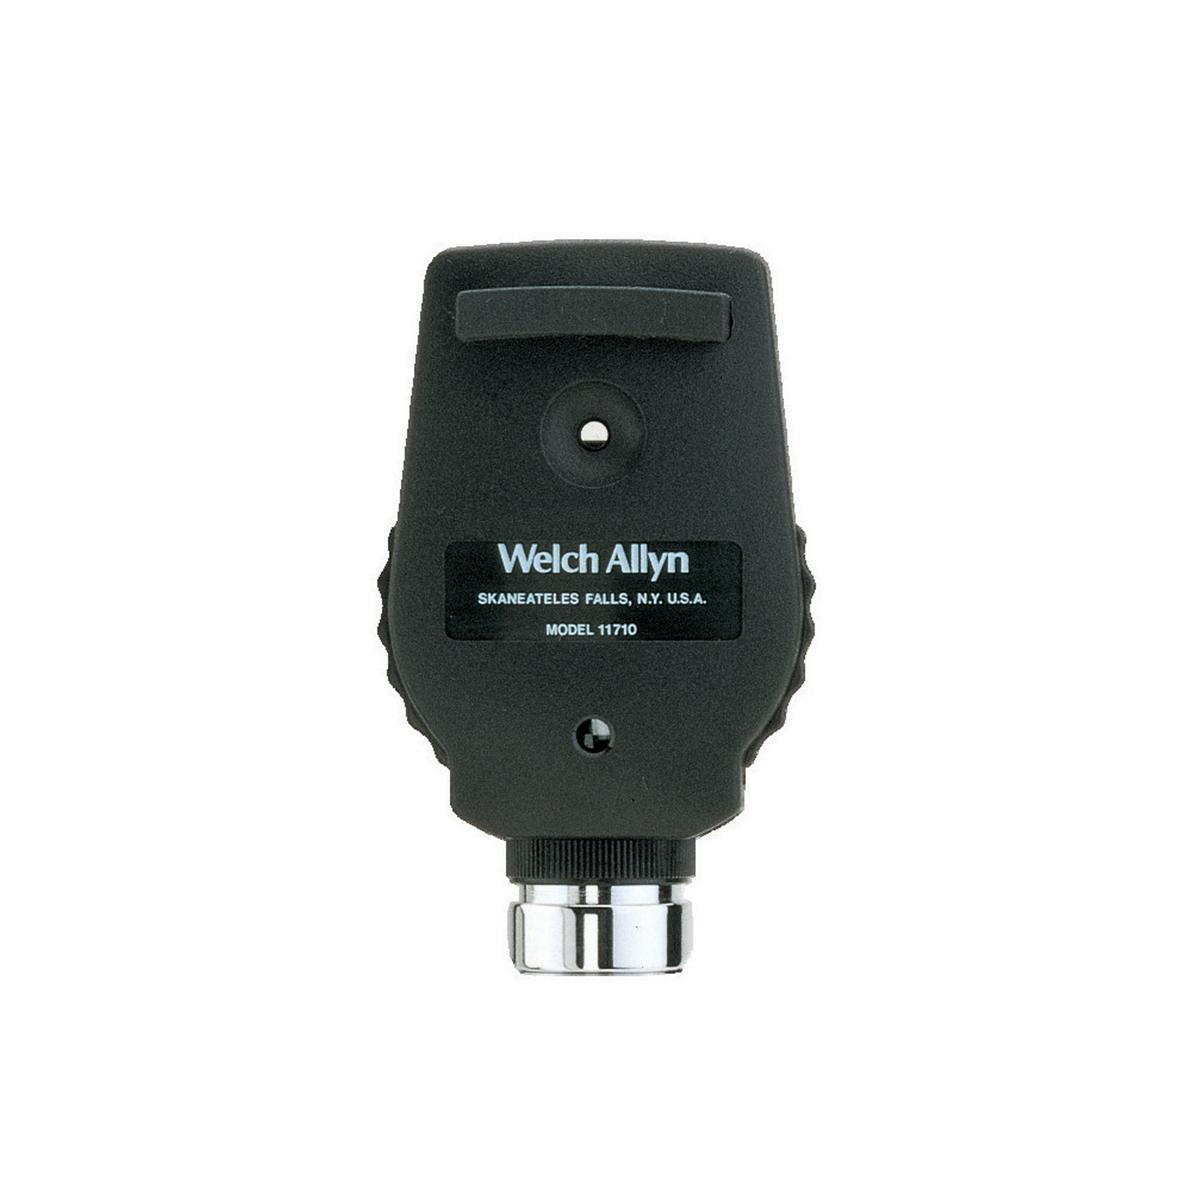 3.5V Standard Ophthalmoscope Veterinary, physician-facing side shown